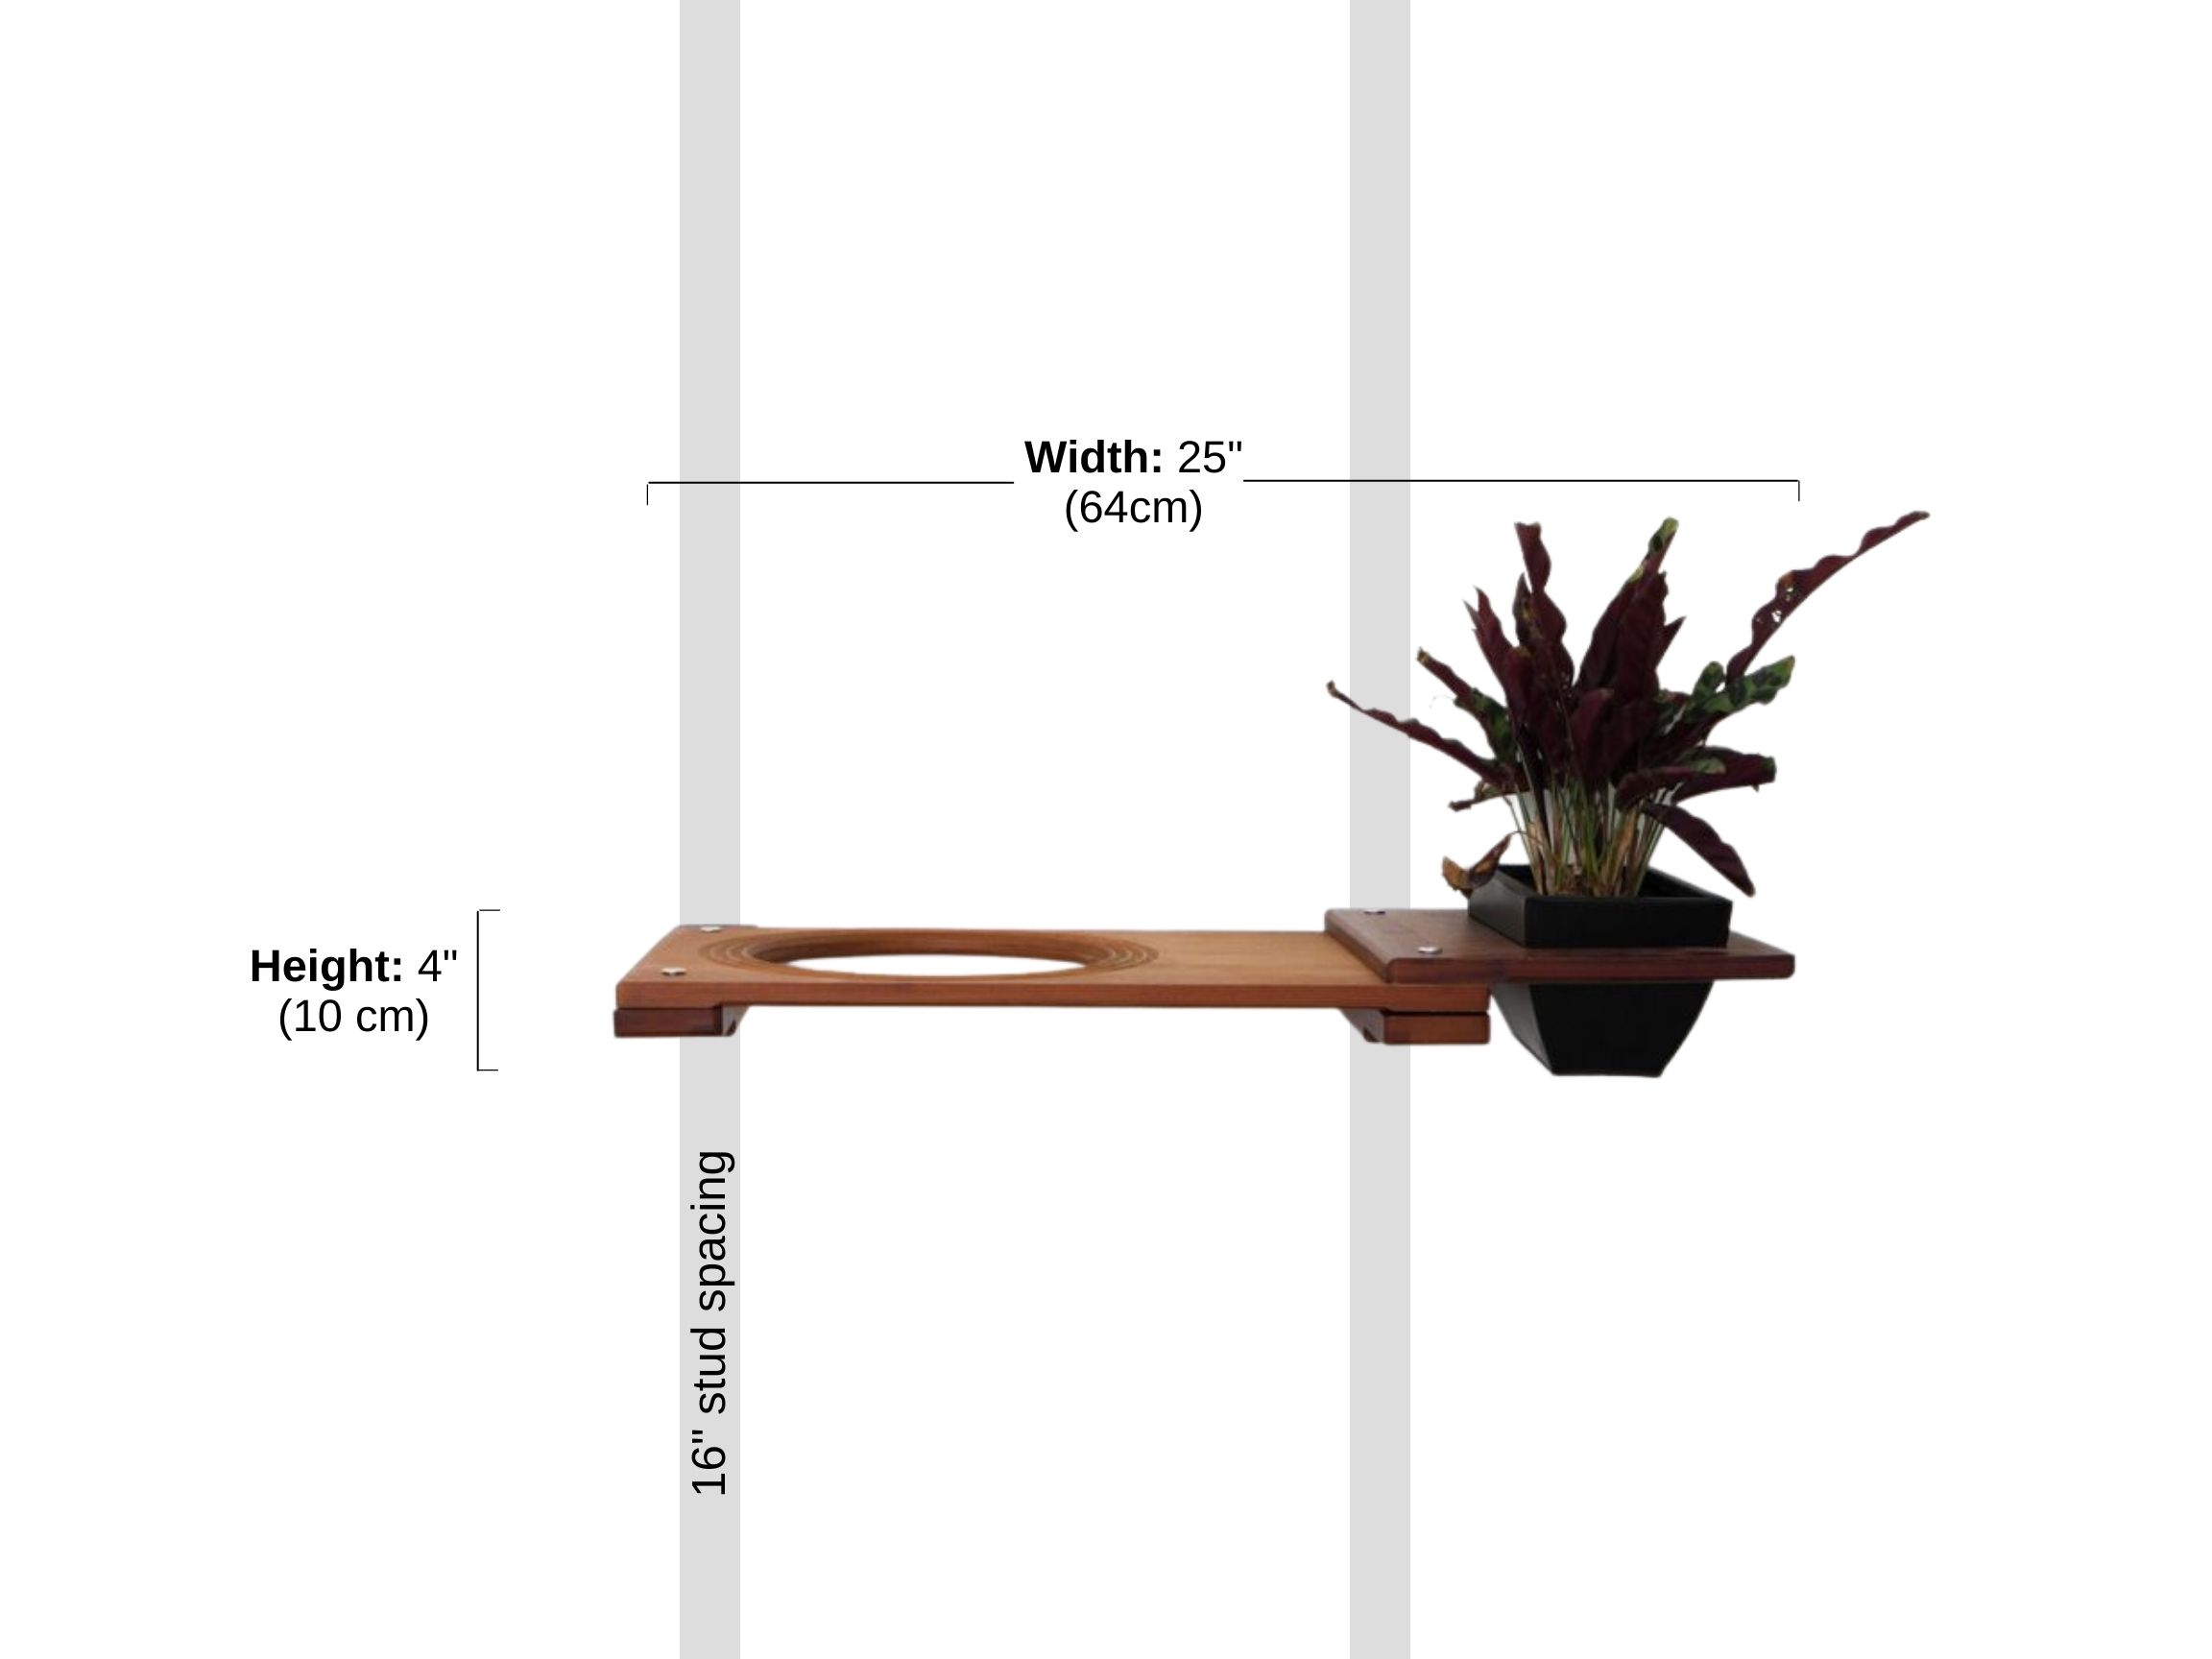 """Stud spacing and Dimensions of 18"""" Escape Hatch with Planter"""